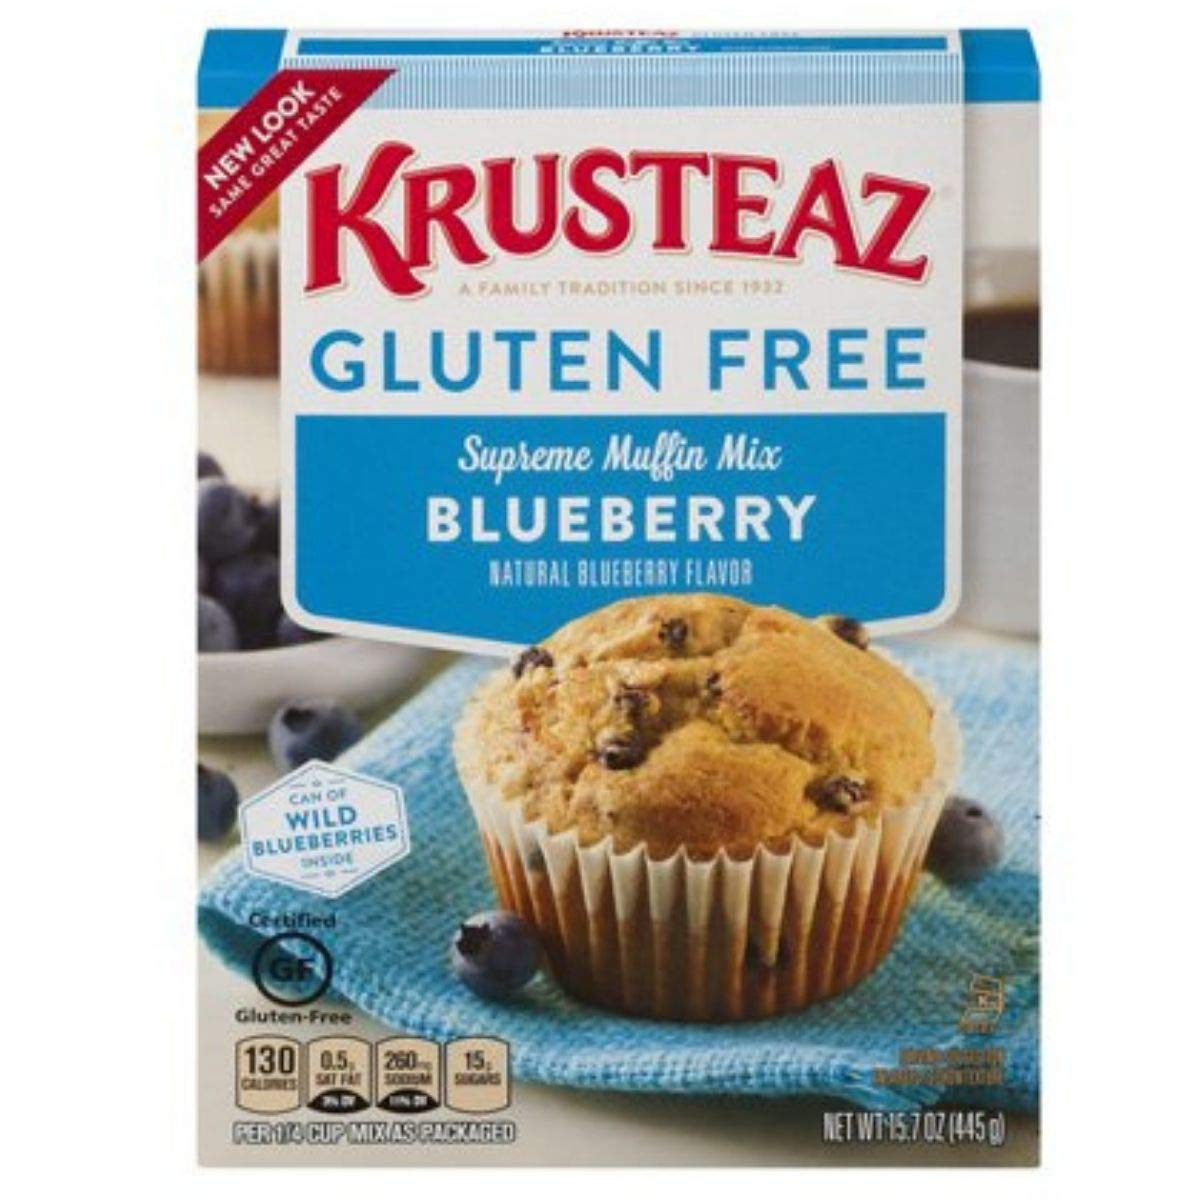 Krusteaz Gluten Free Blueberry Muffin Mix, 15.7-Ounce Box (Pack of 12) by Krusteaz